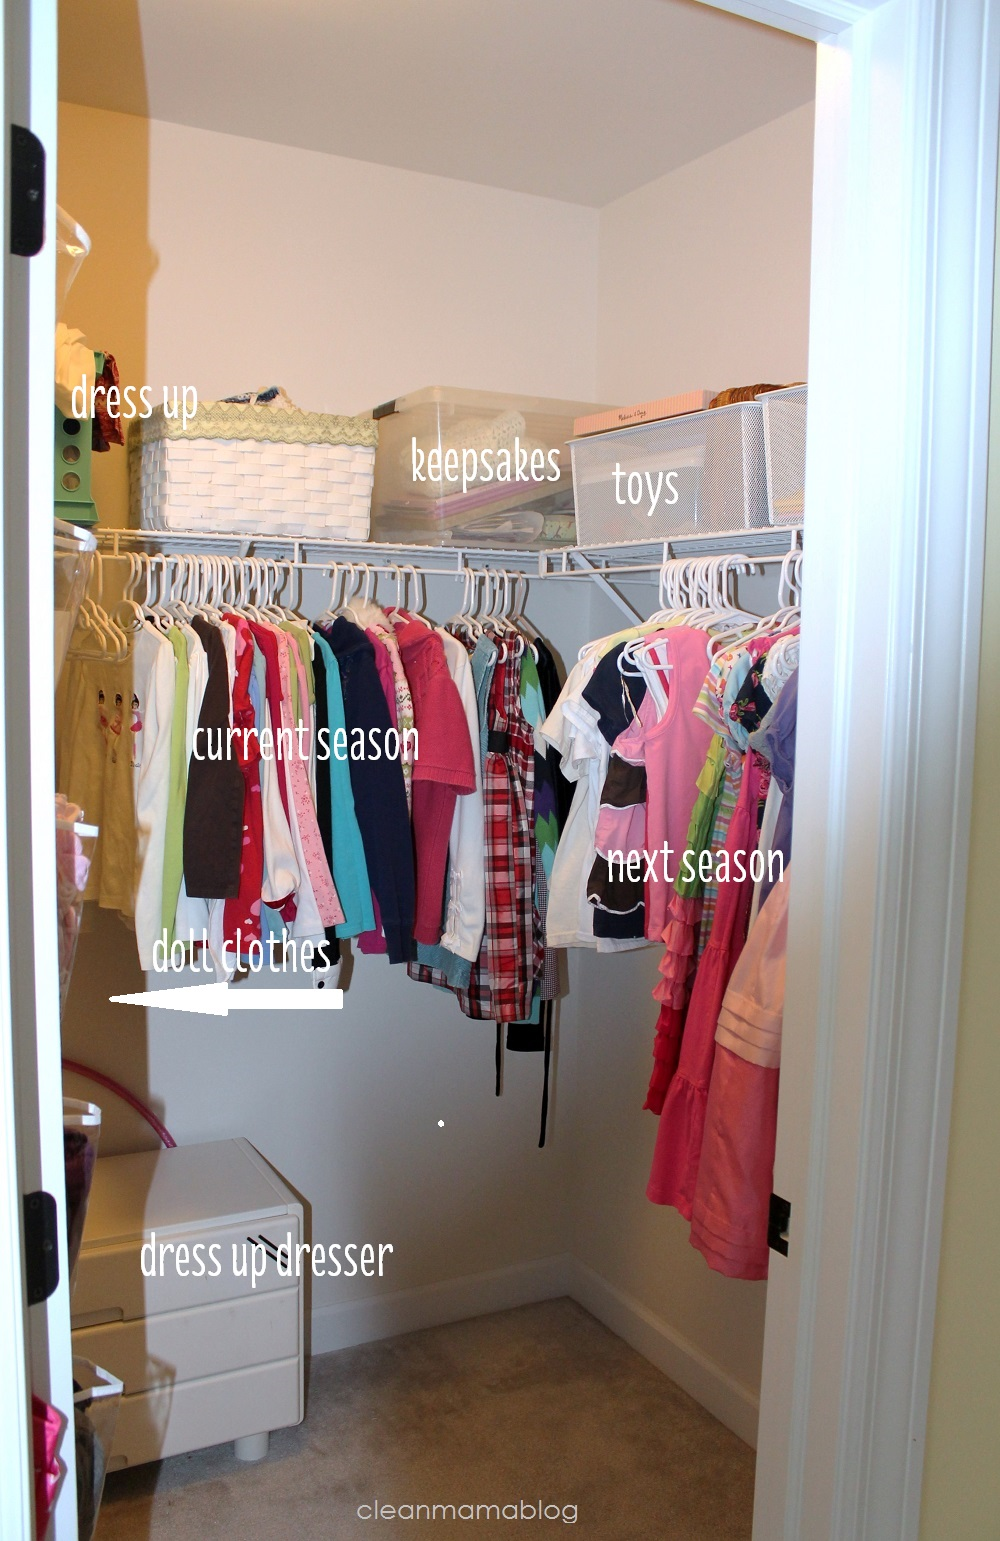 Cleaning Closet New With Spring Cleaning Your Closet Images